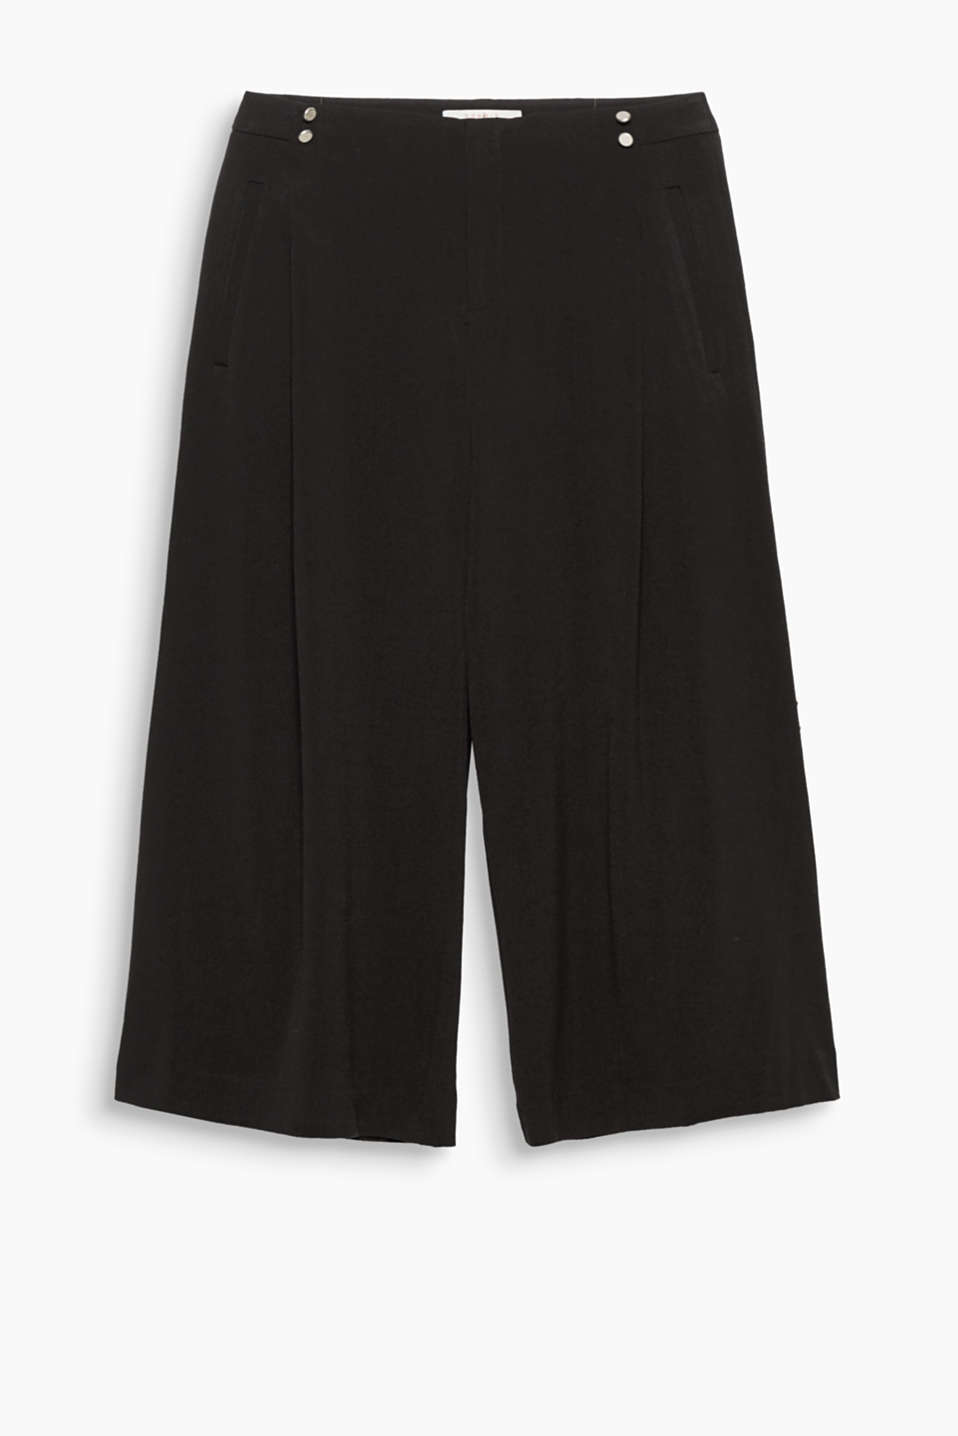 Decorative side buttons on the waistband and inset pleats make these flowing culottes your new, stylish go-to fave!